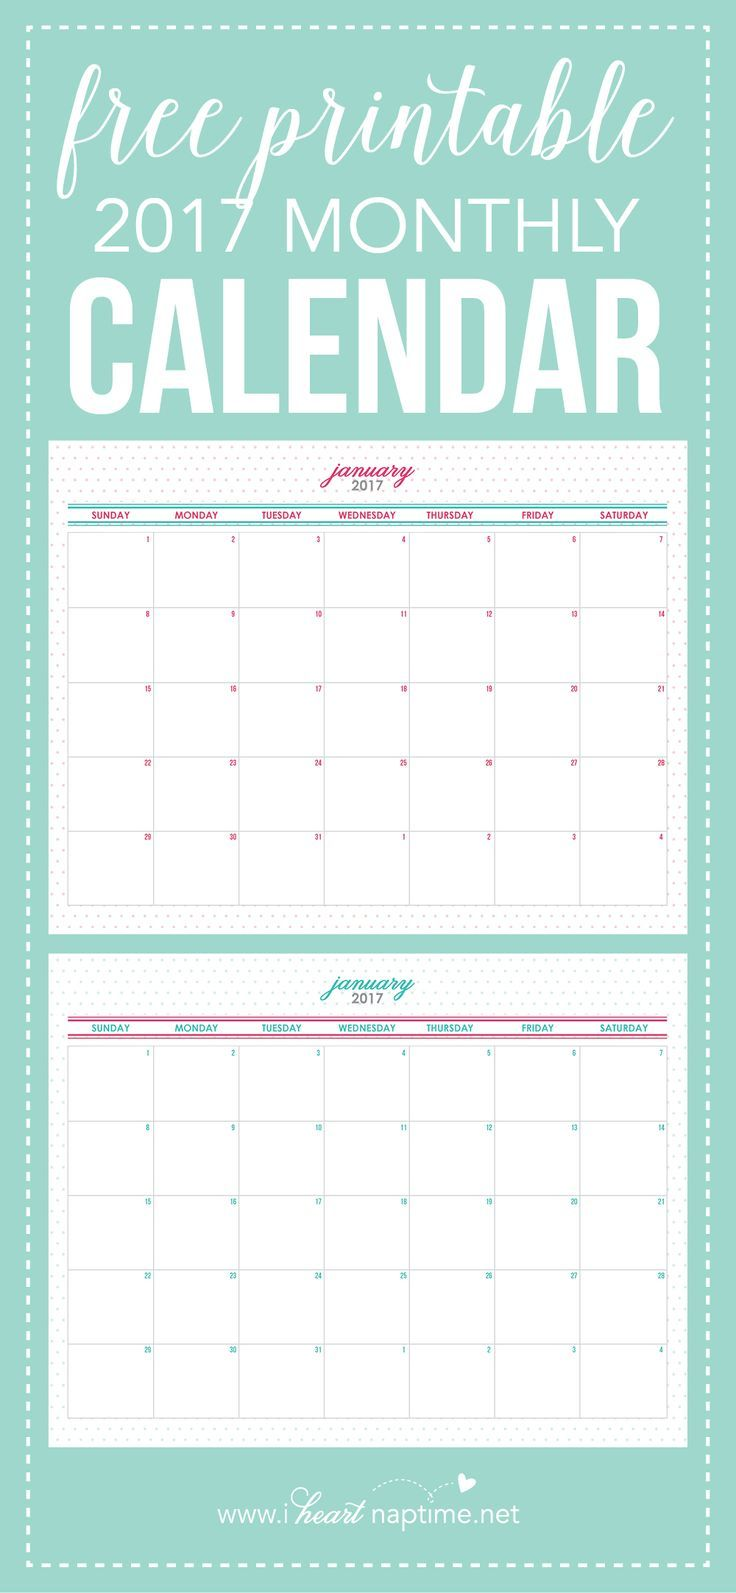 Download this FREE Printable 2017 Monthly Calendar to stay organized